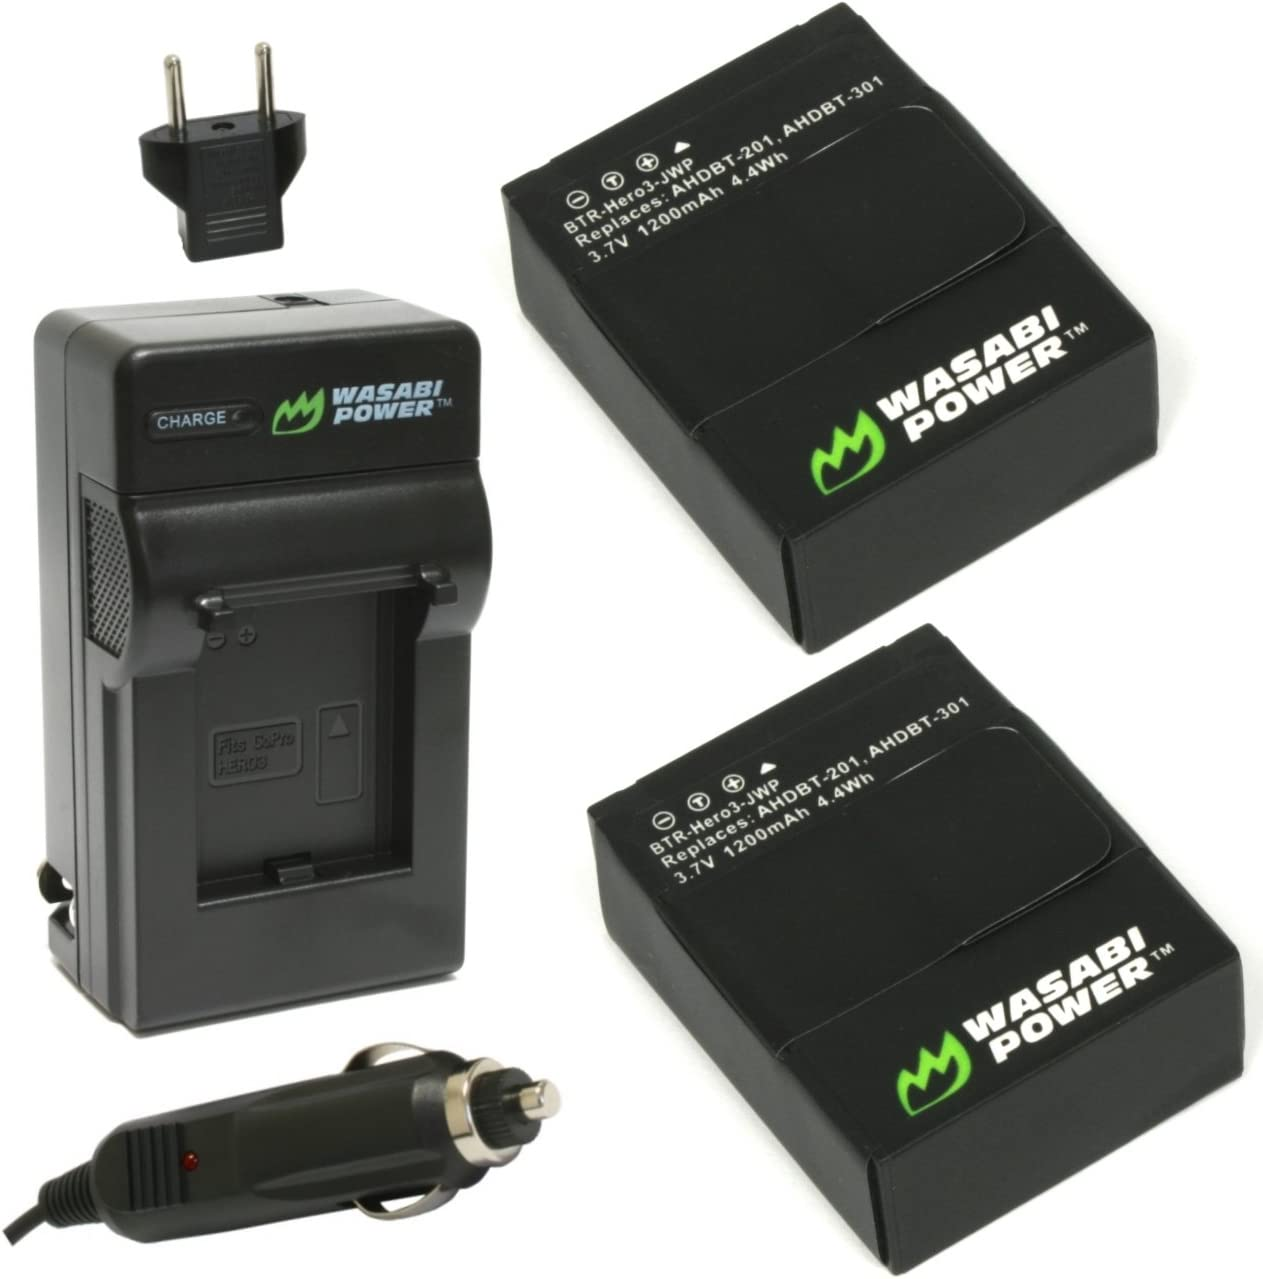 AHDBT-301 and Charger for GoPro HERO3+ 2-Pack Wasabi Power Battery AHDBT-302 HERO3 and GoPro AHDBT-201